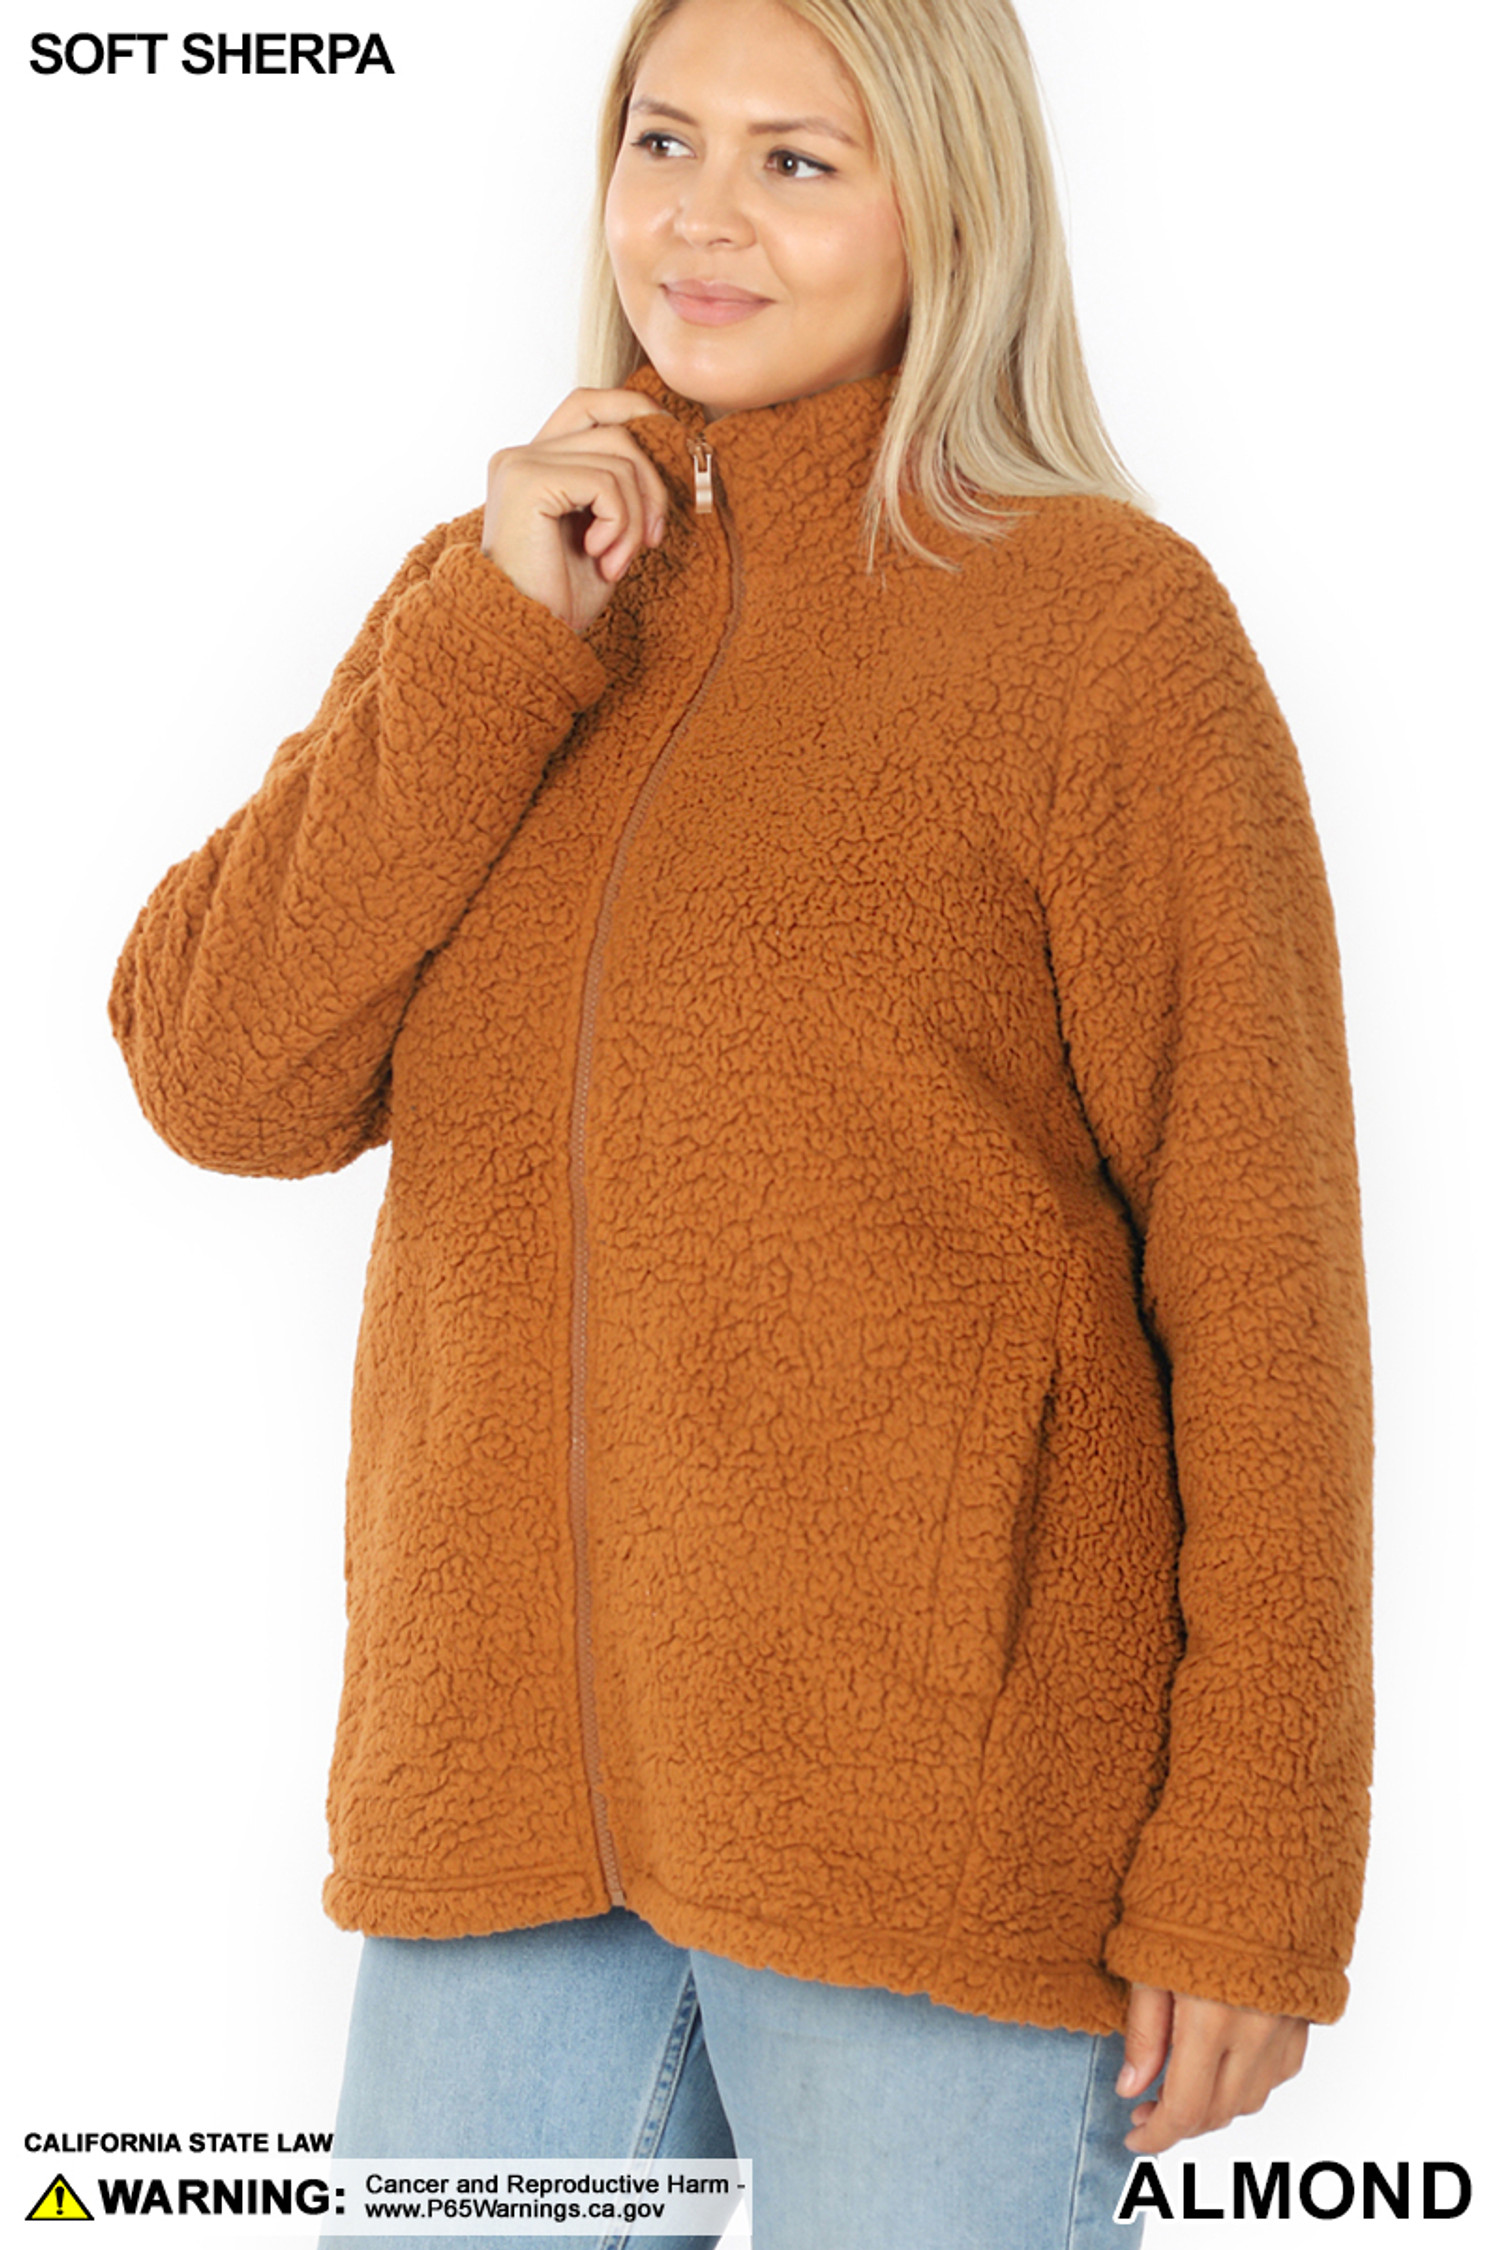 Front image of Almond Sherpa Zip Up Plus Size Jacket with Side Pockets